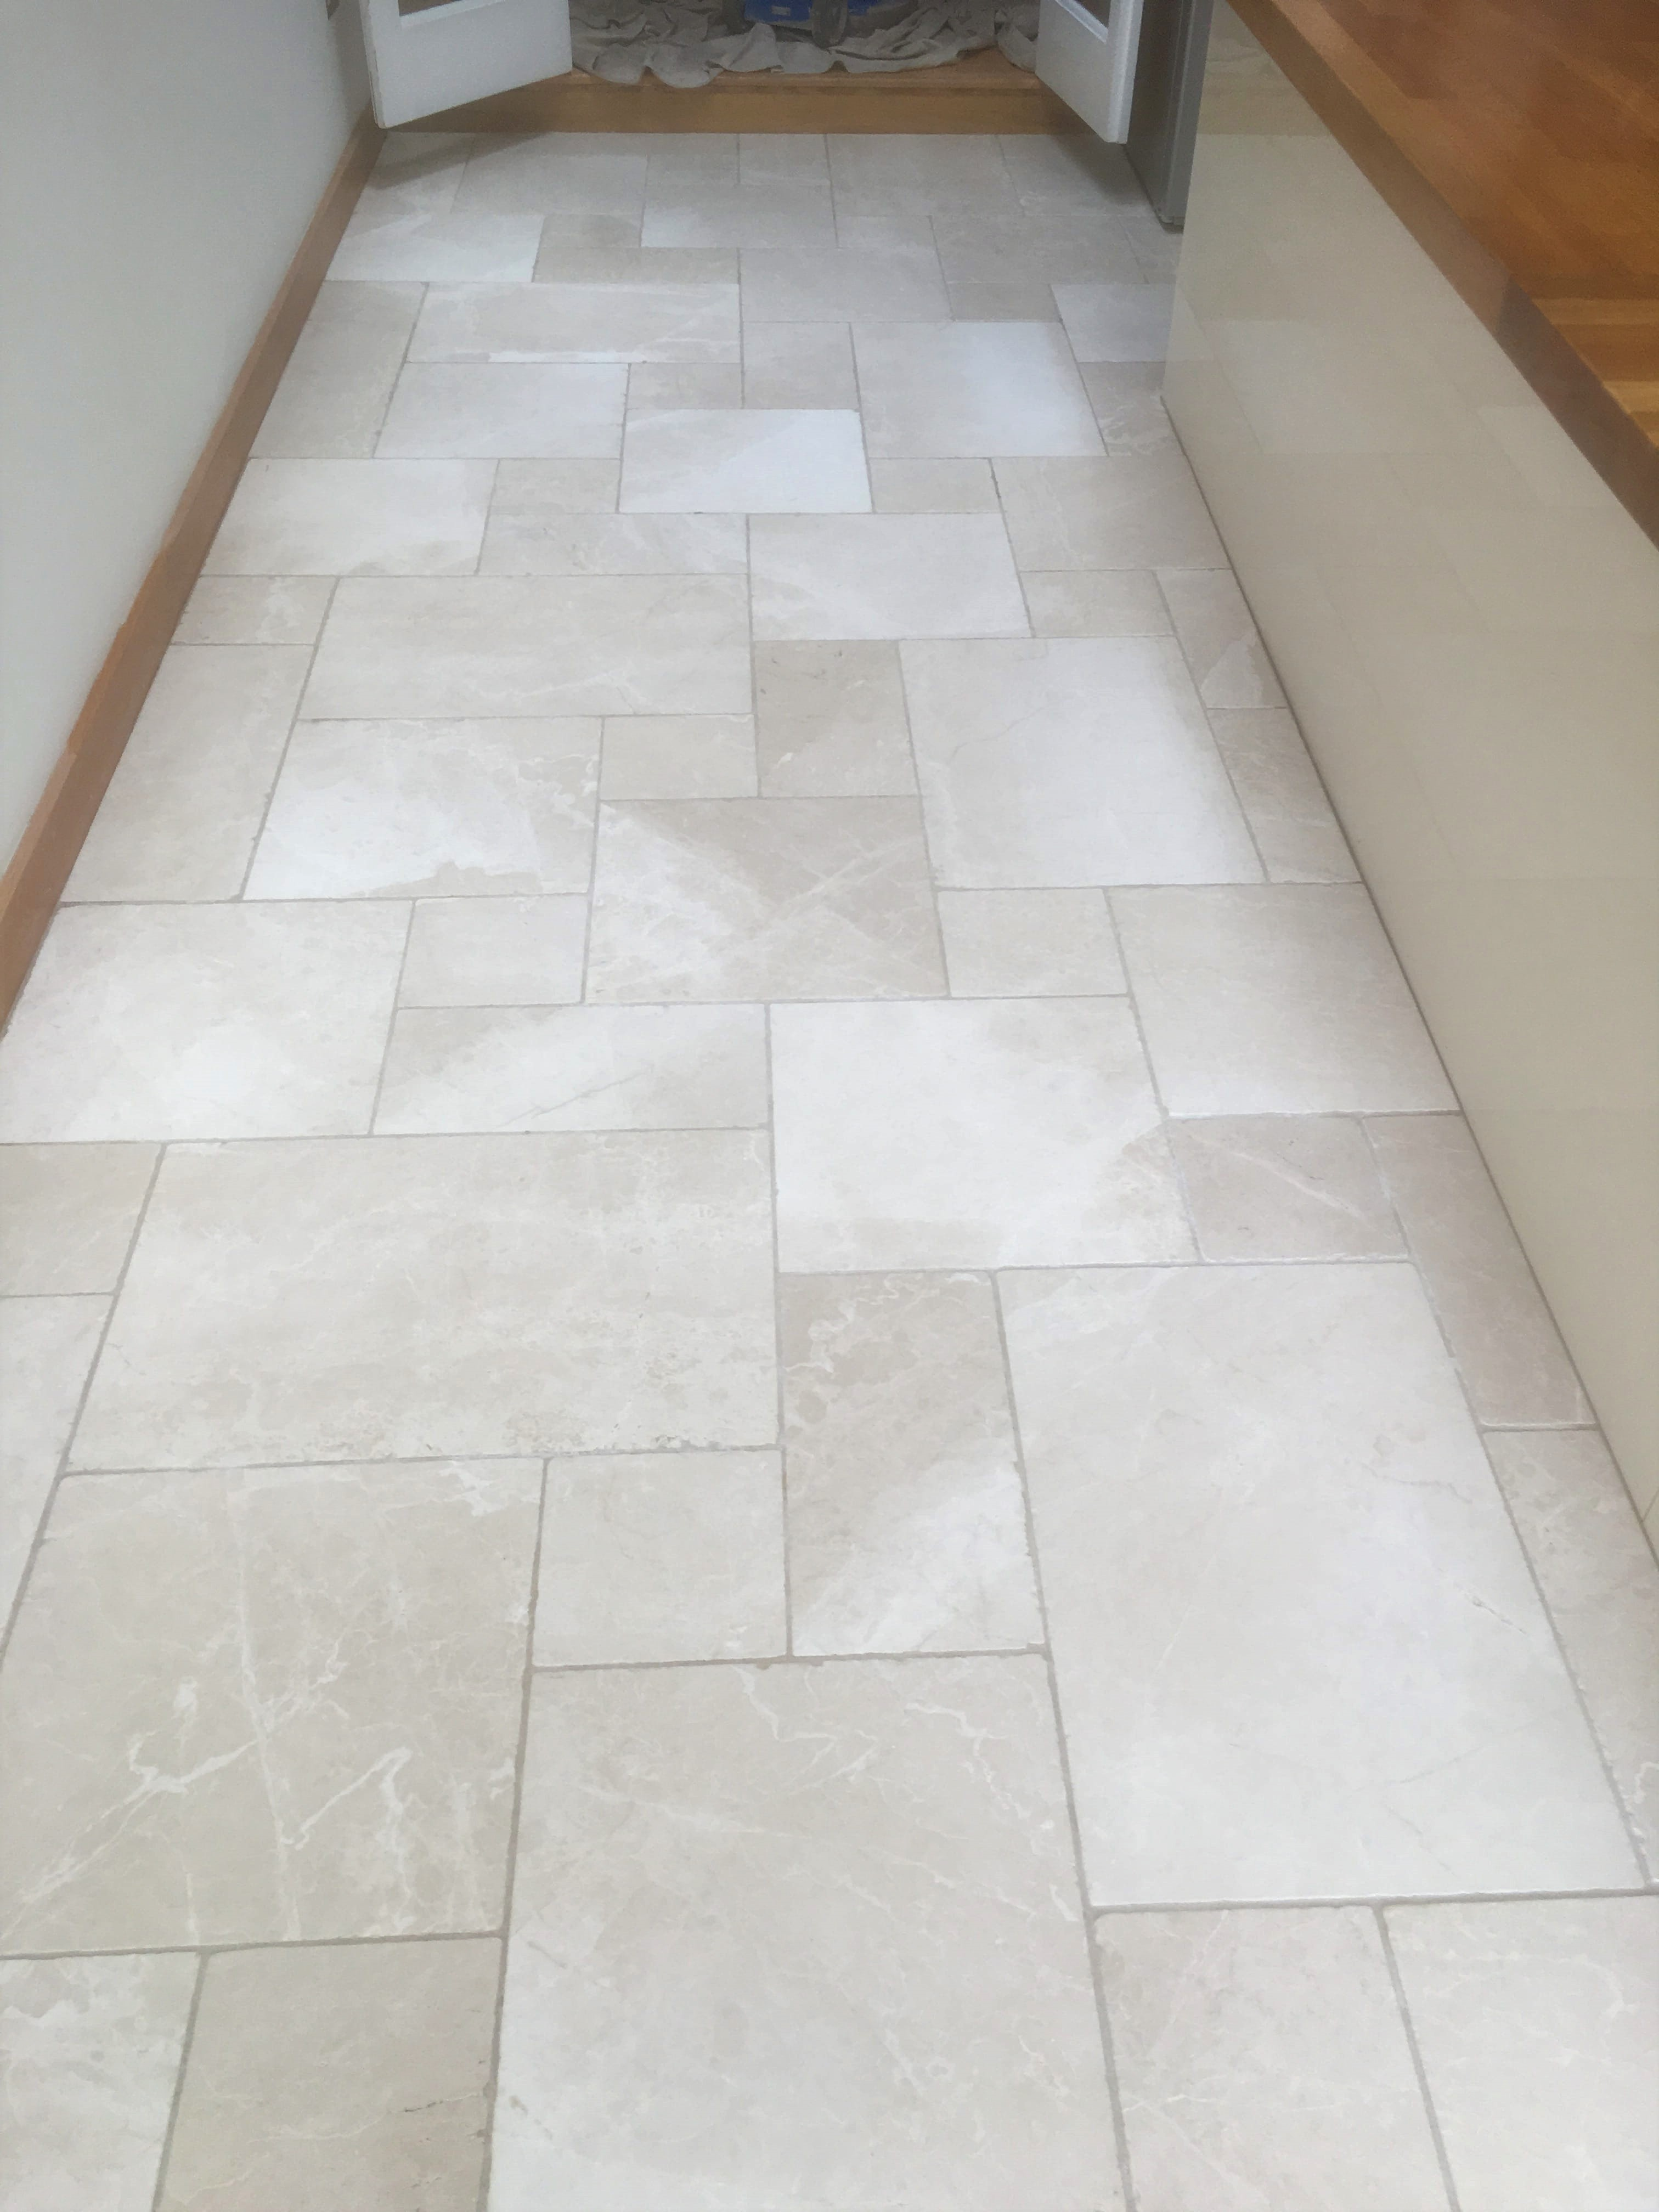 Tumbled Marble Floor After Cleaning Oxford